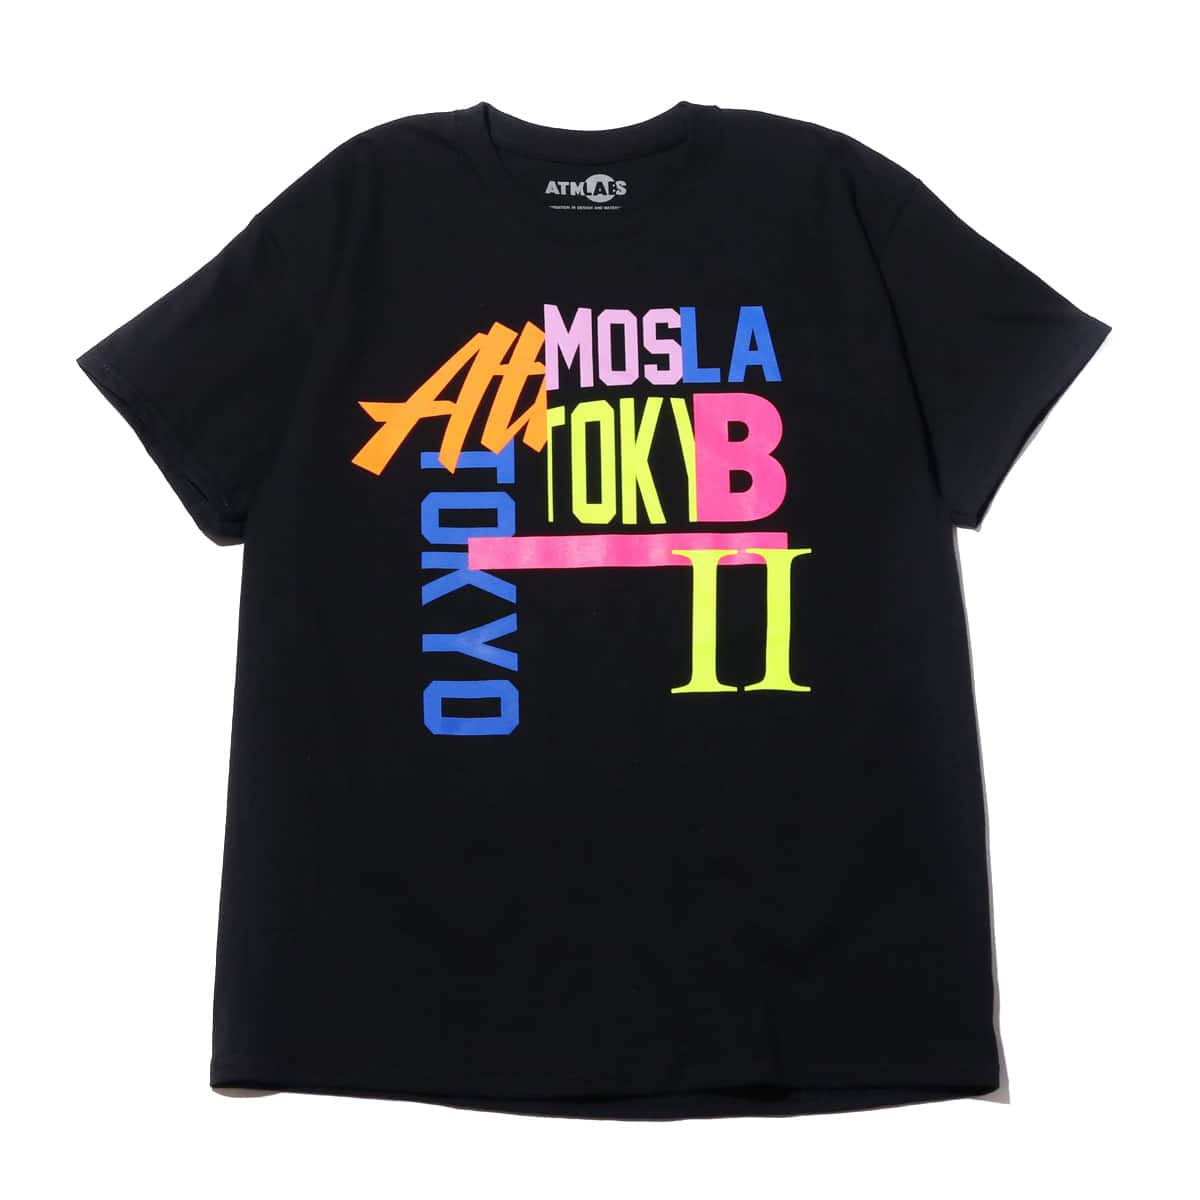 ATMOS LAB MIX LOGO TEE BLACK 19SU-S_photo_large